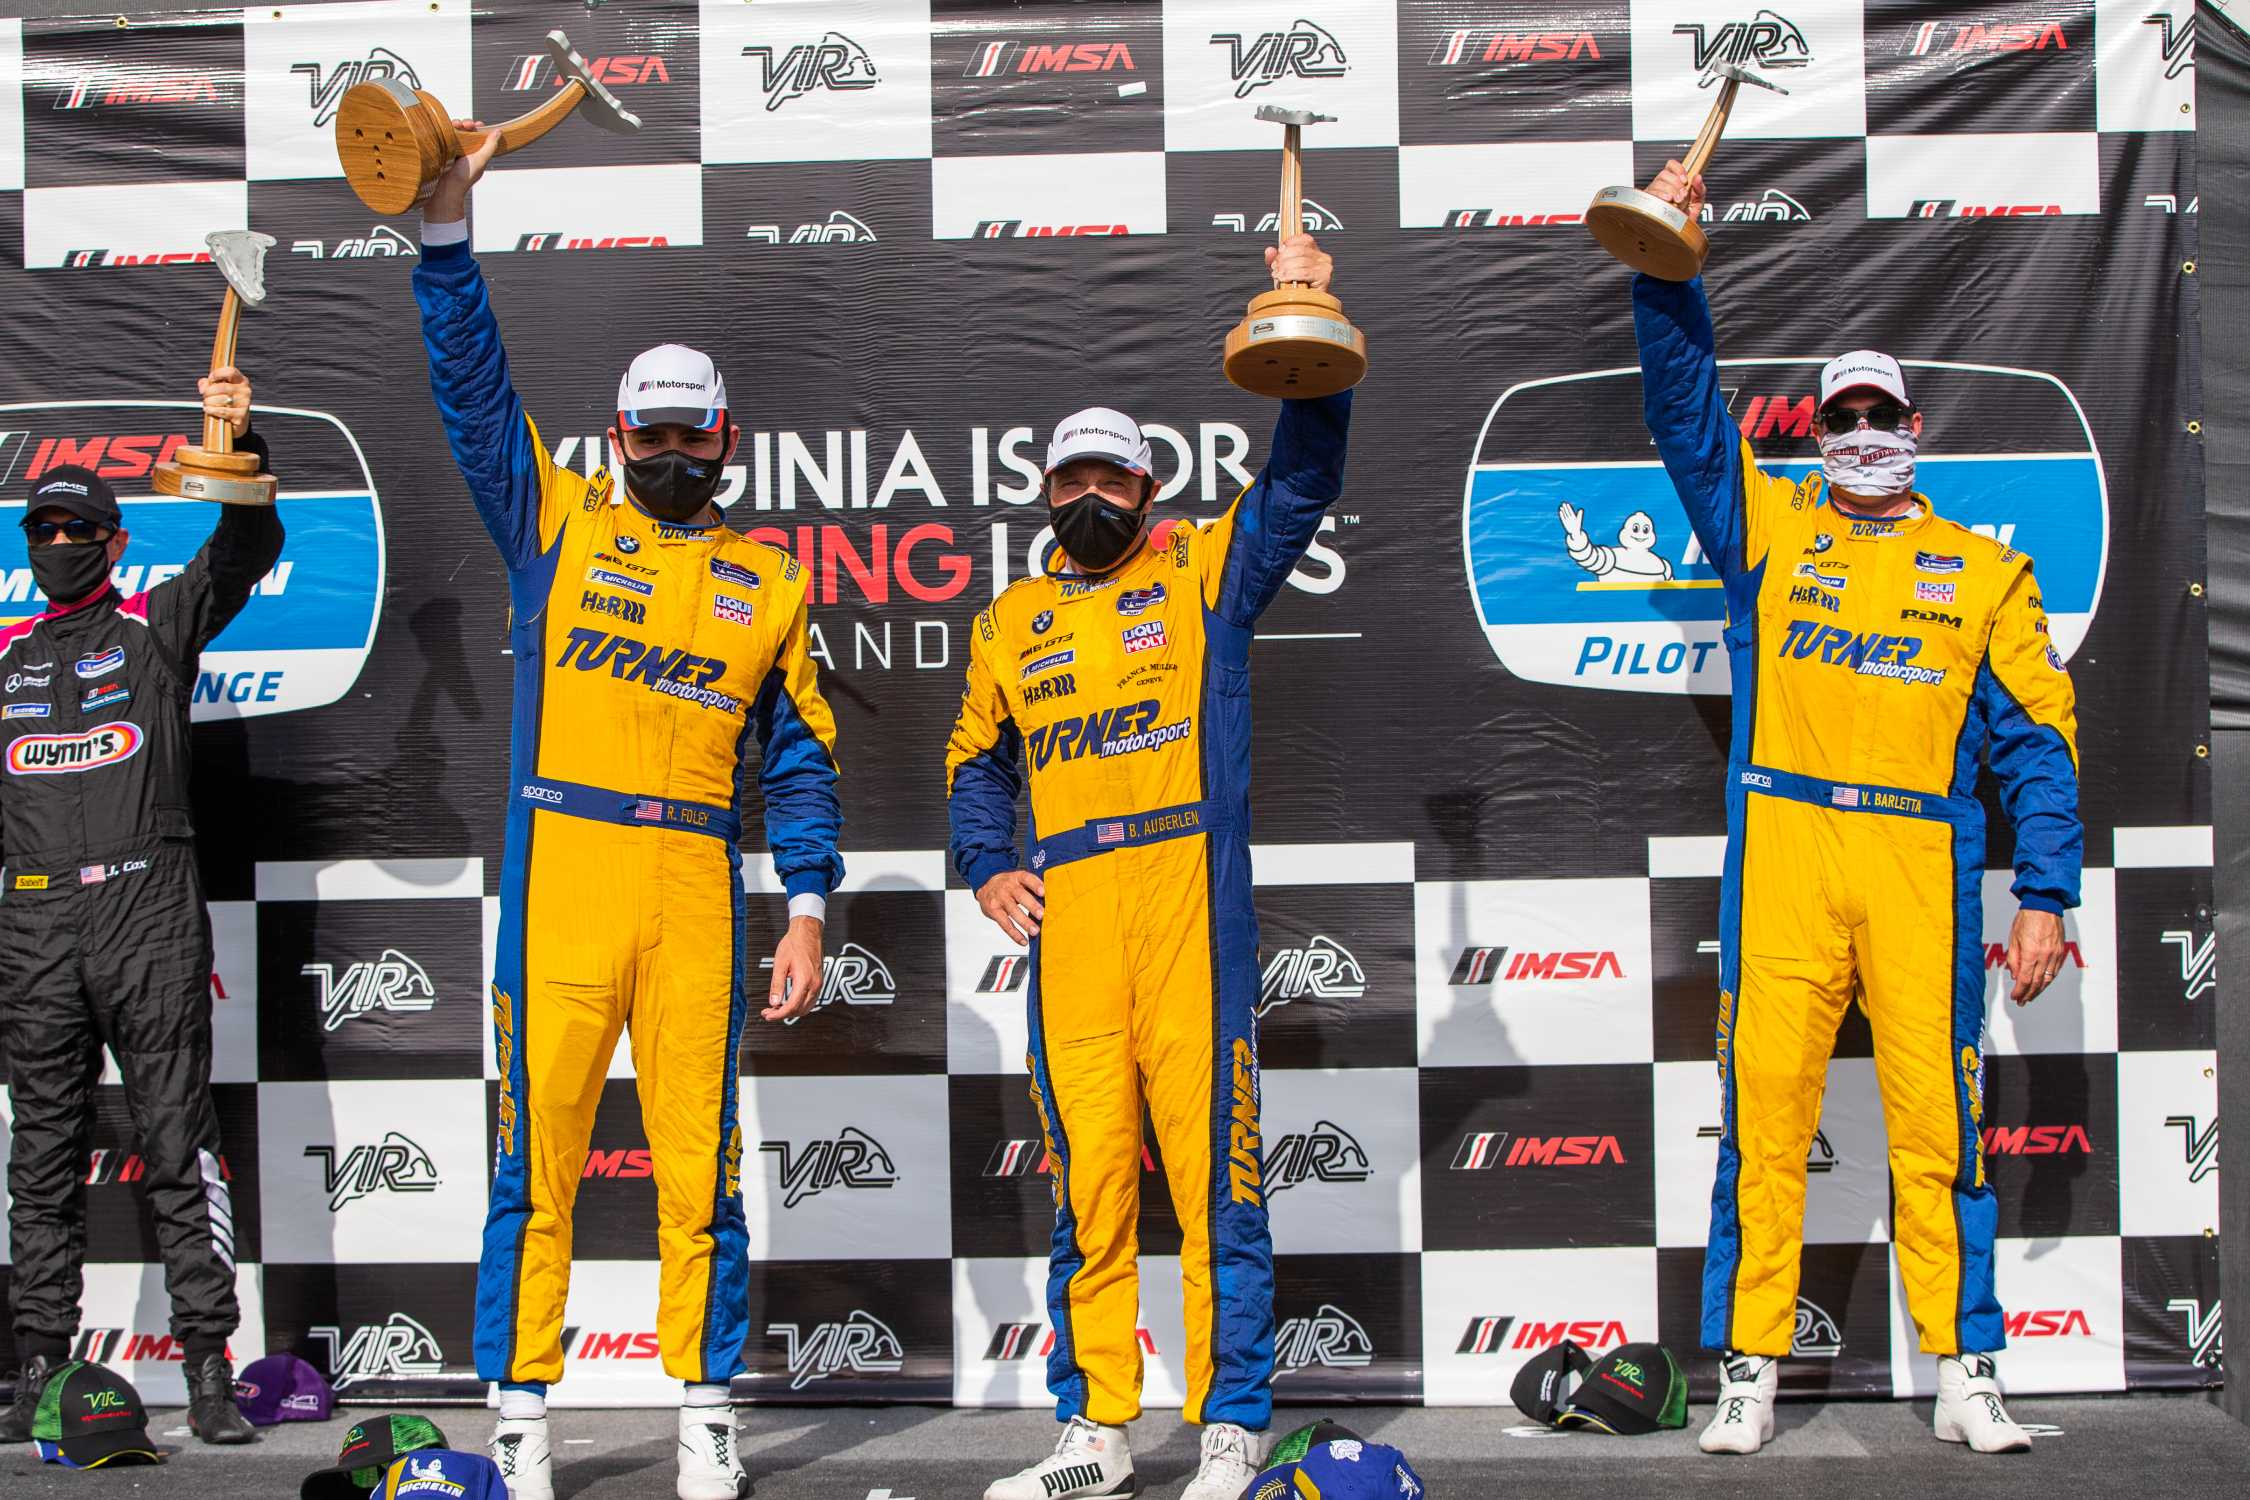 Virginia International Raceway (USA), 23rd August 2020. Michelin Pilot Challenge, Turner Motorsport, Bill Auberlen, Robby Foley, Vincent Barletta.